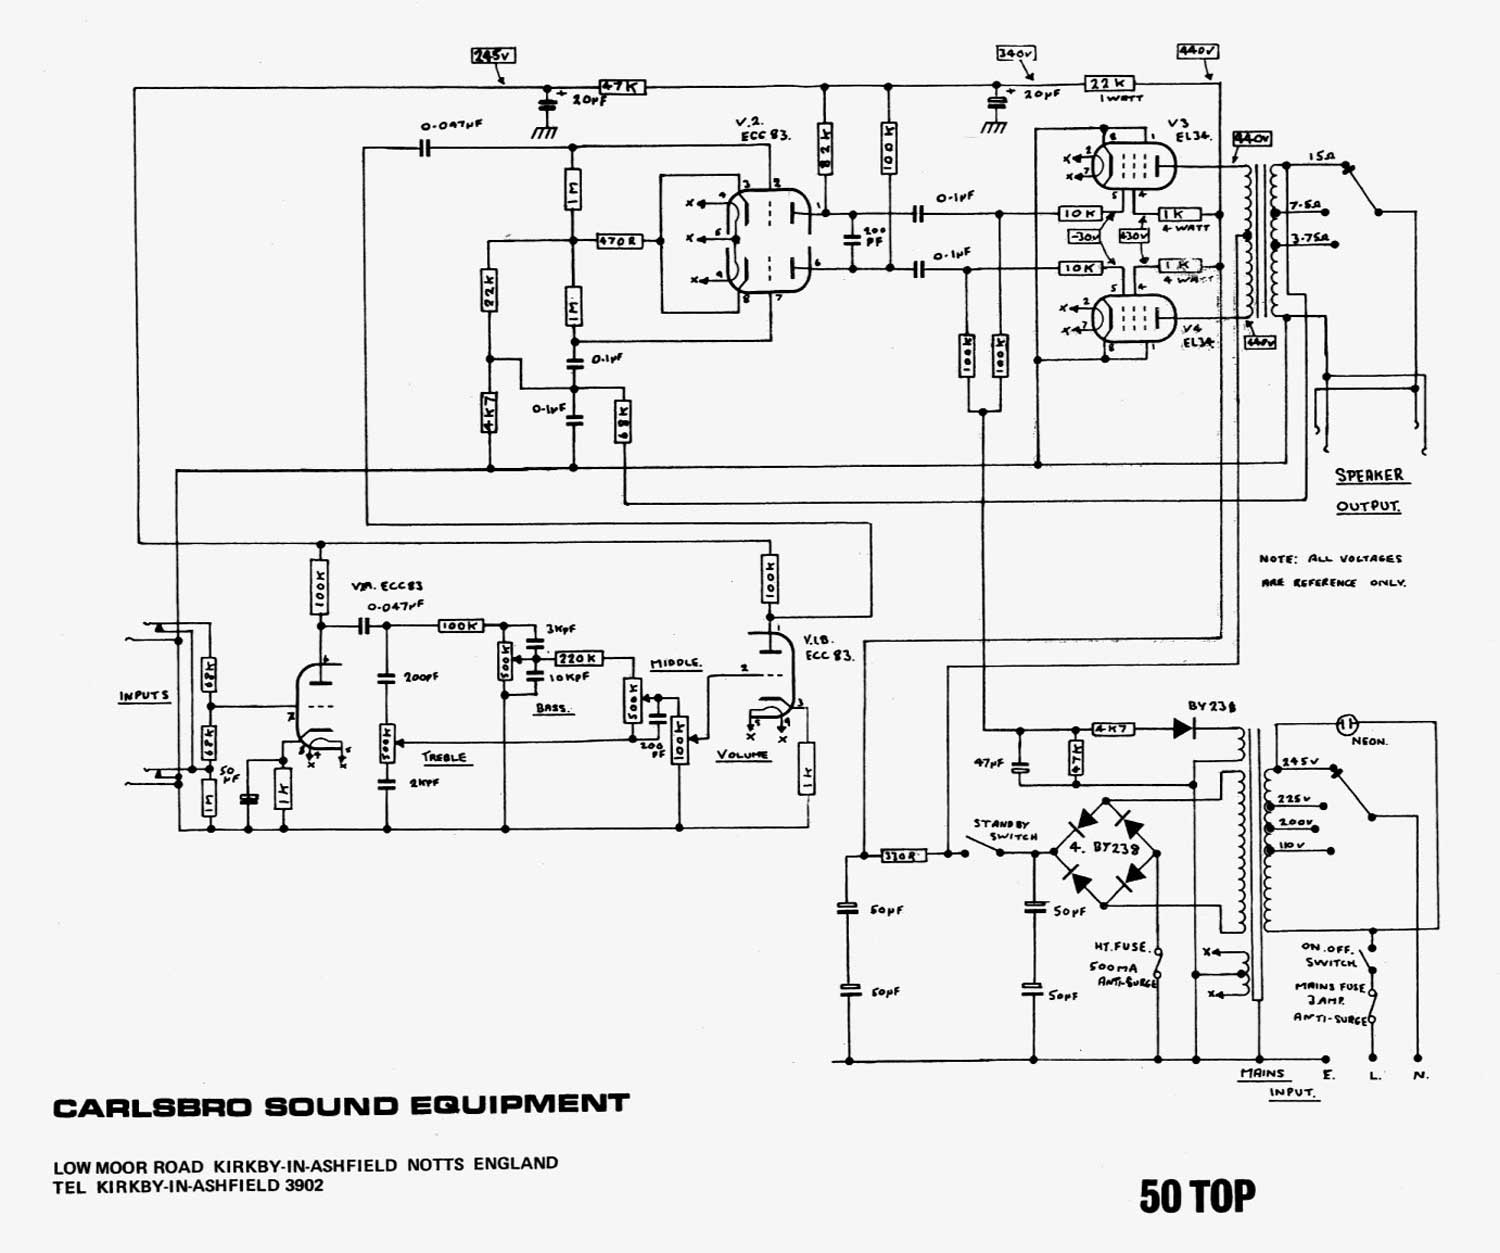 Milbank 320 Amp Meter Socket Wiring Diagram Electrical Pedestal Diagrams Images Gallery